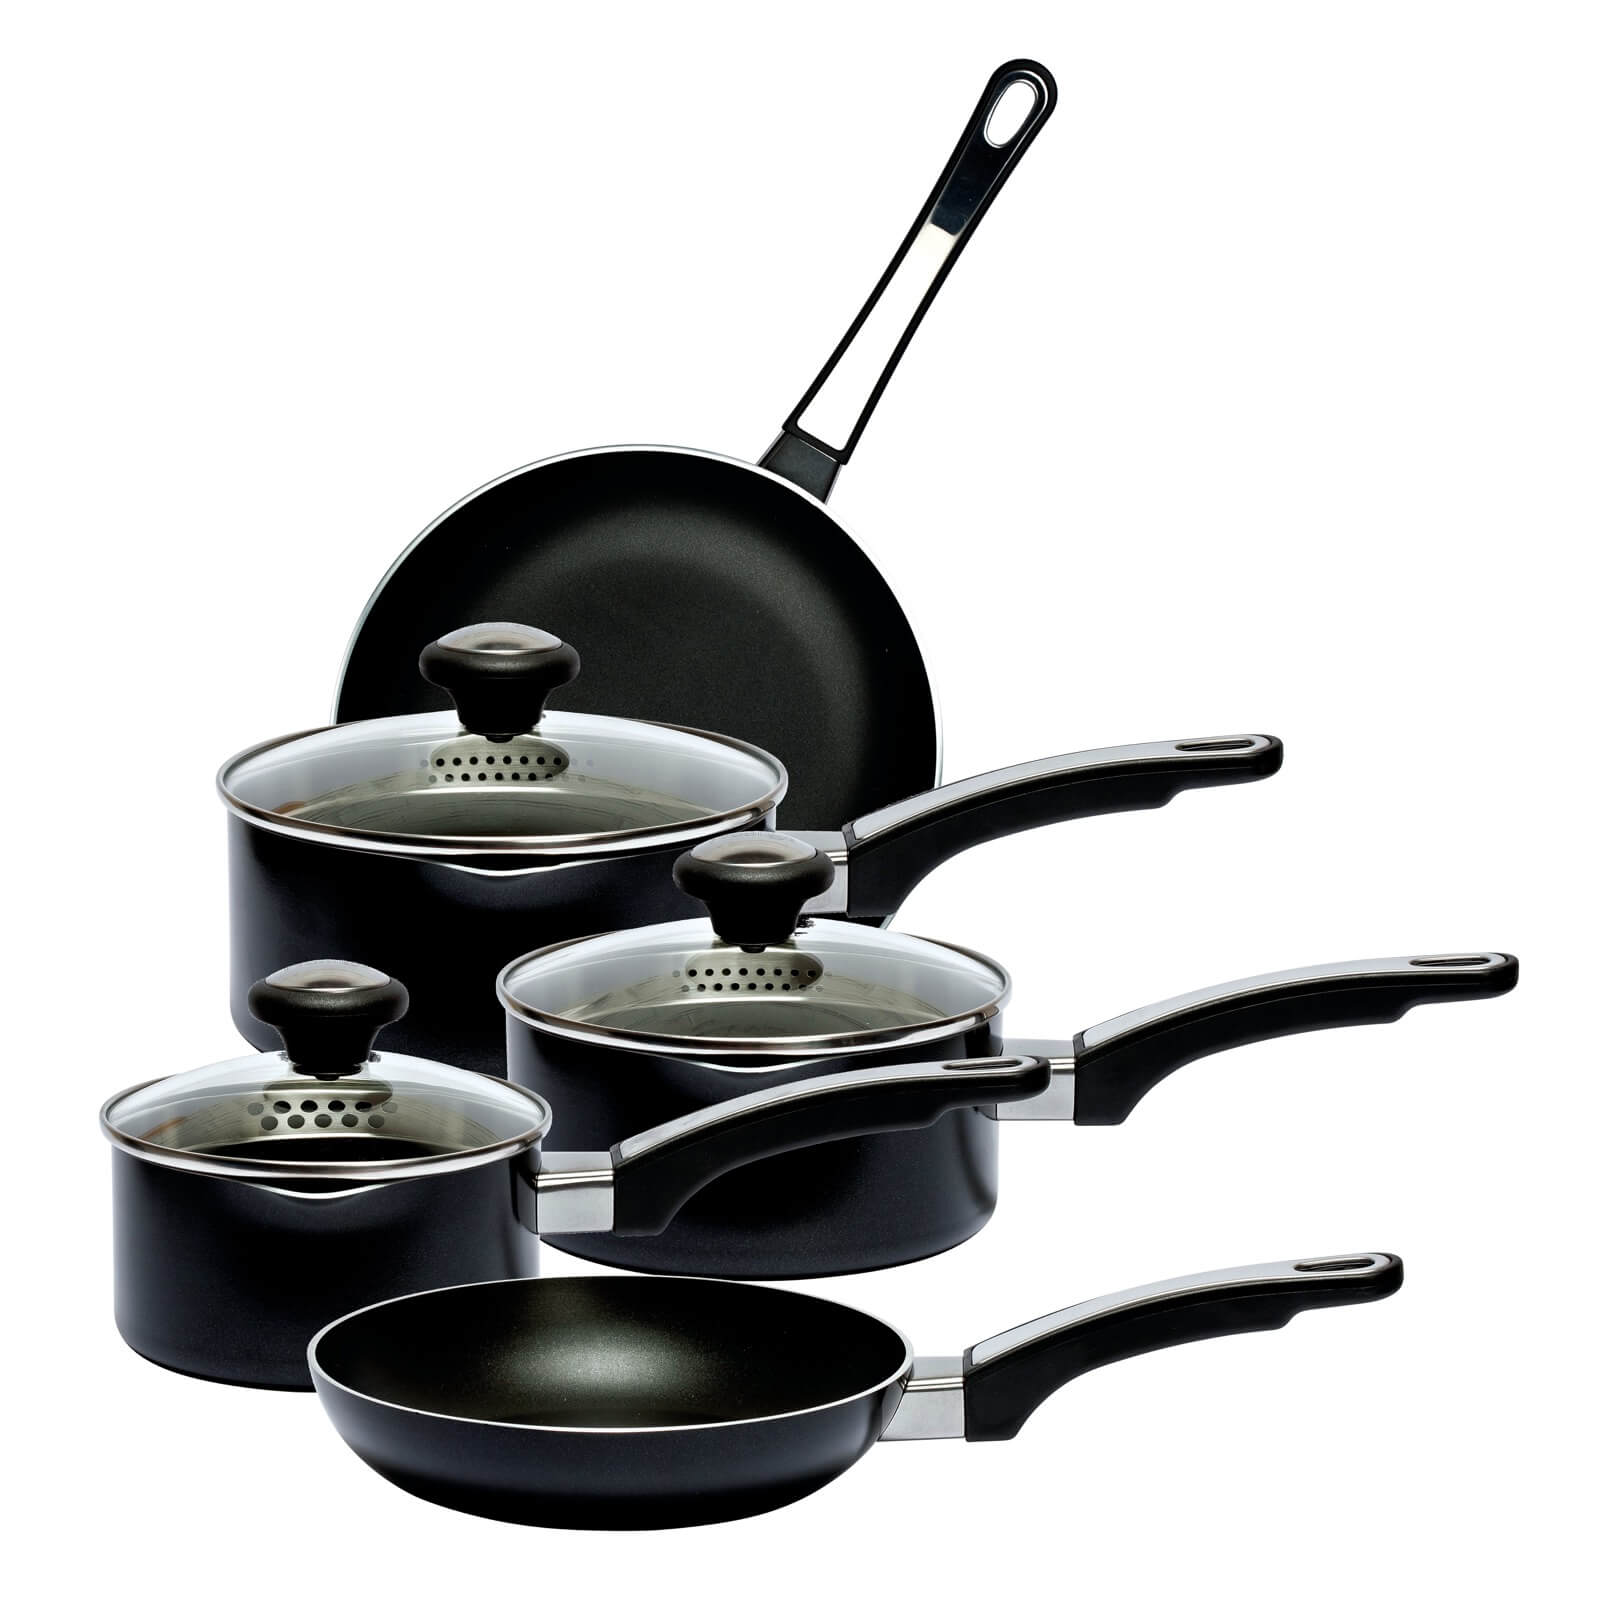 Prestige Everyday Aluminium 5 Piece Straining Set